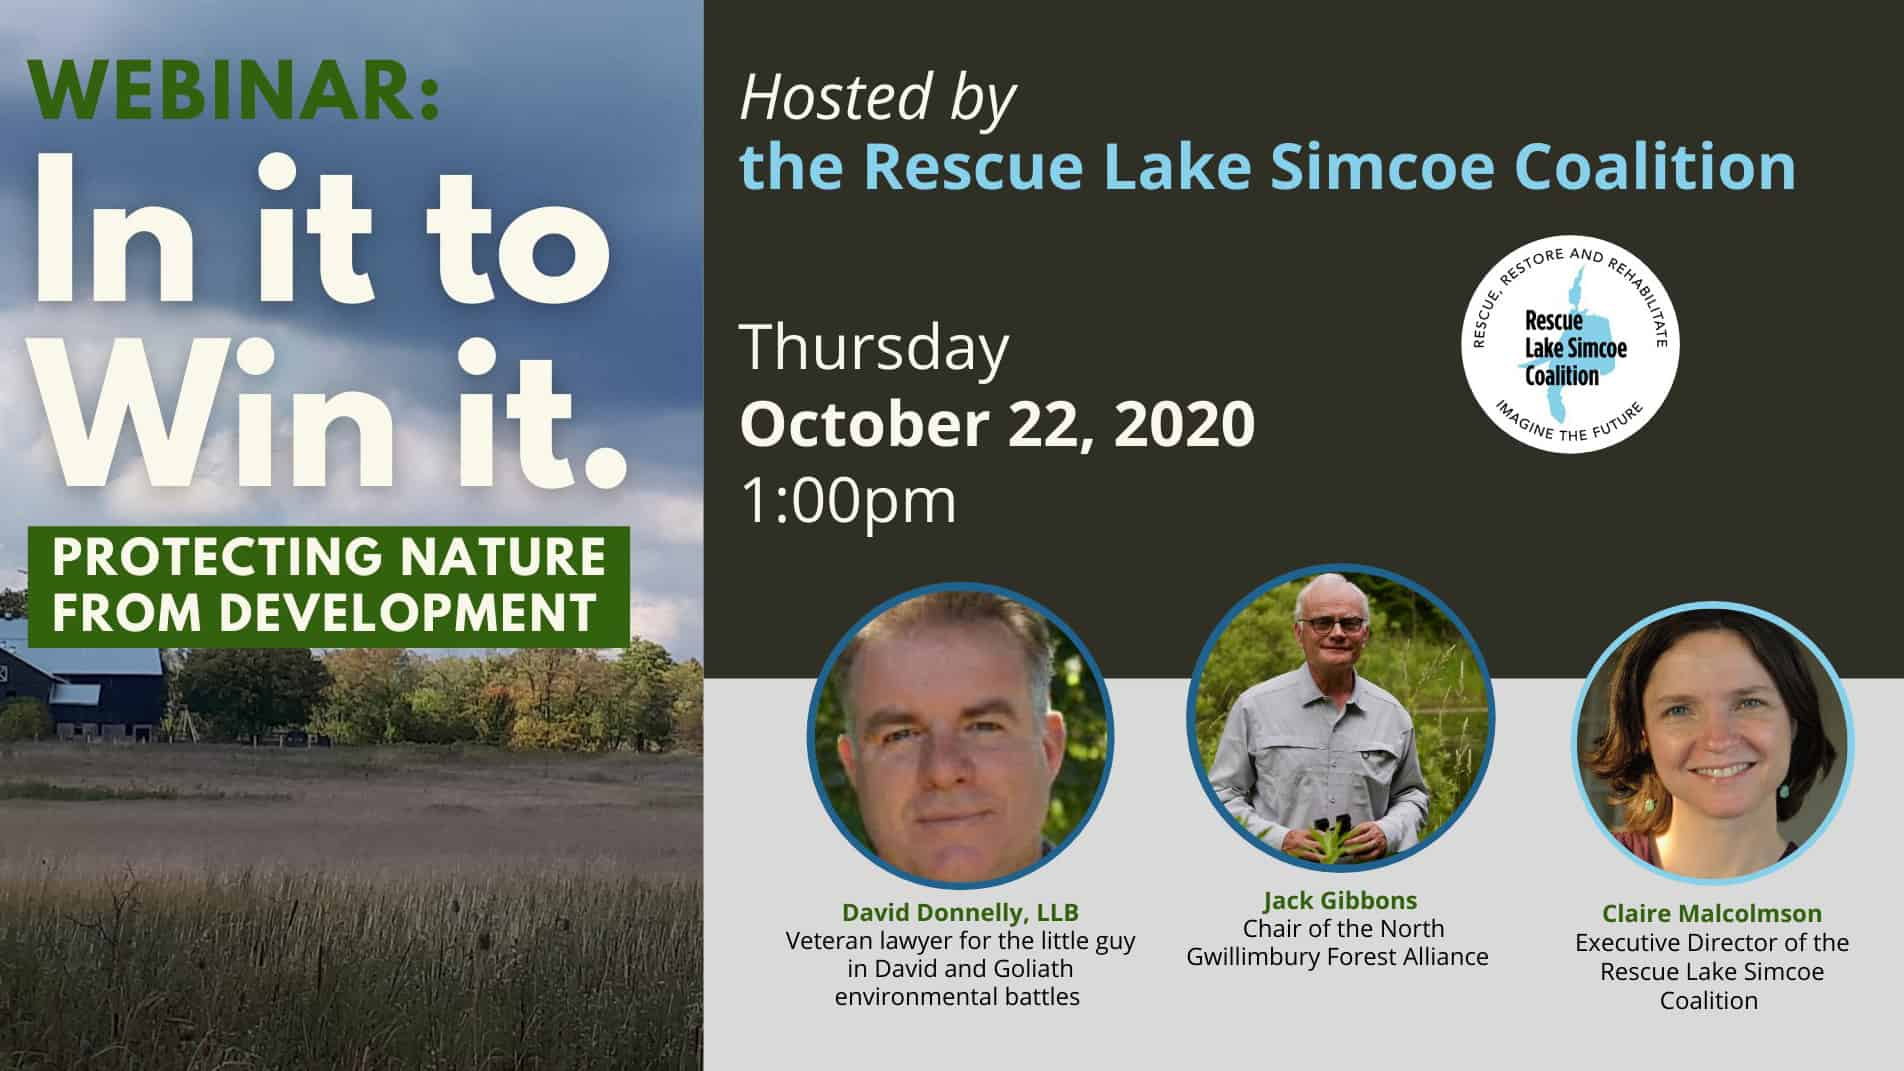 In it to Win it; protecting nature from development webinar announcement